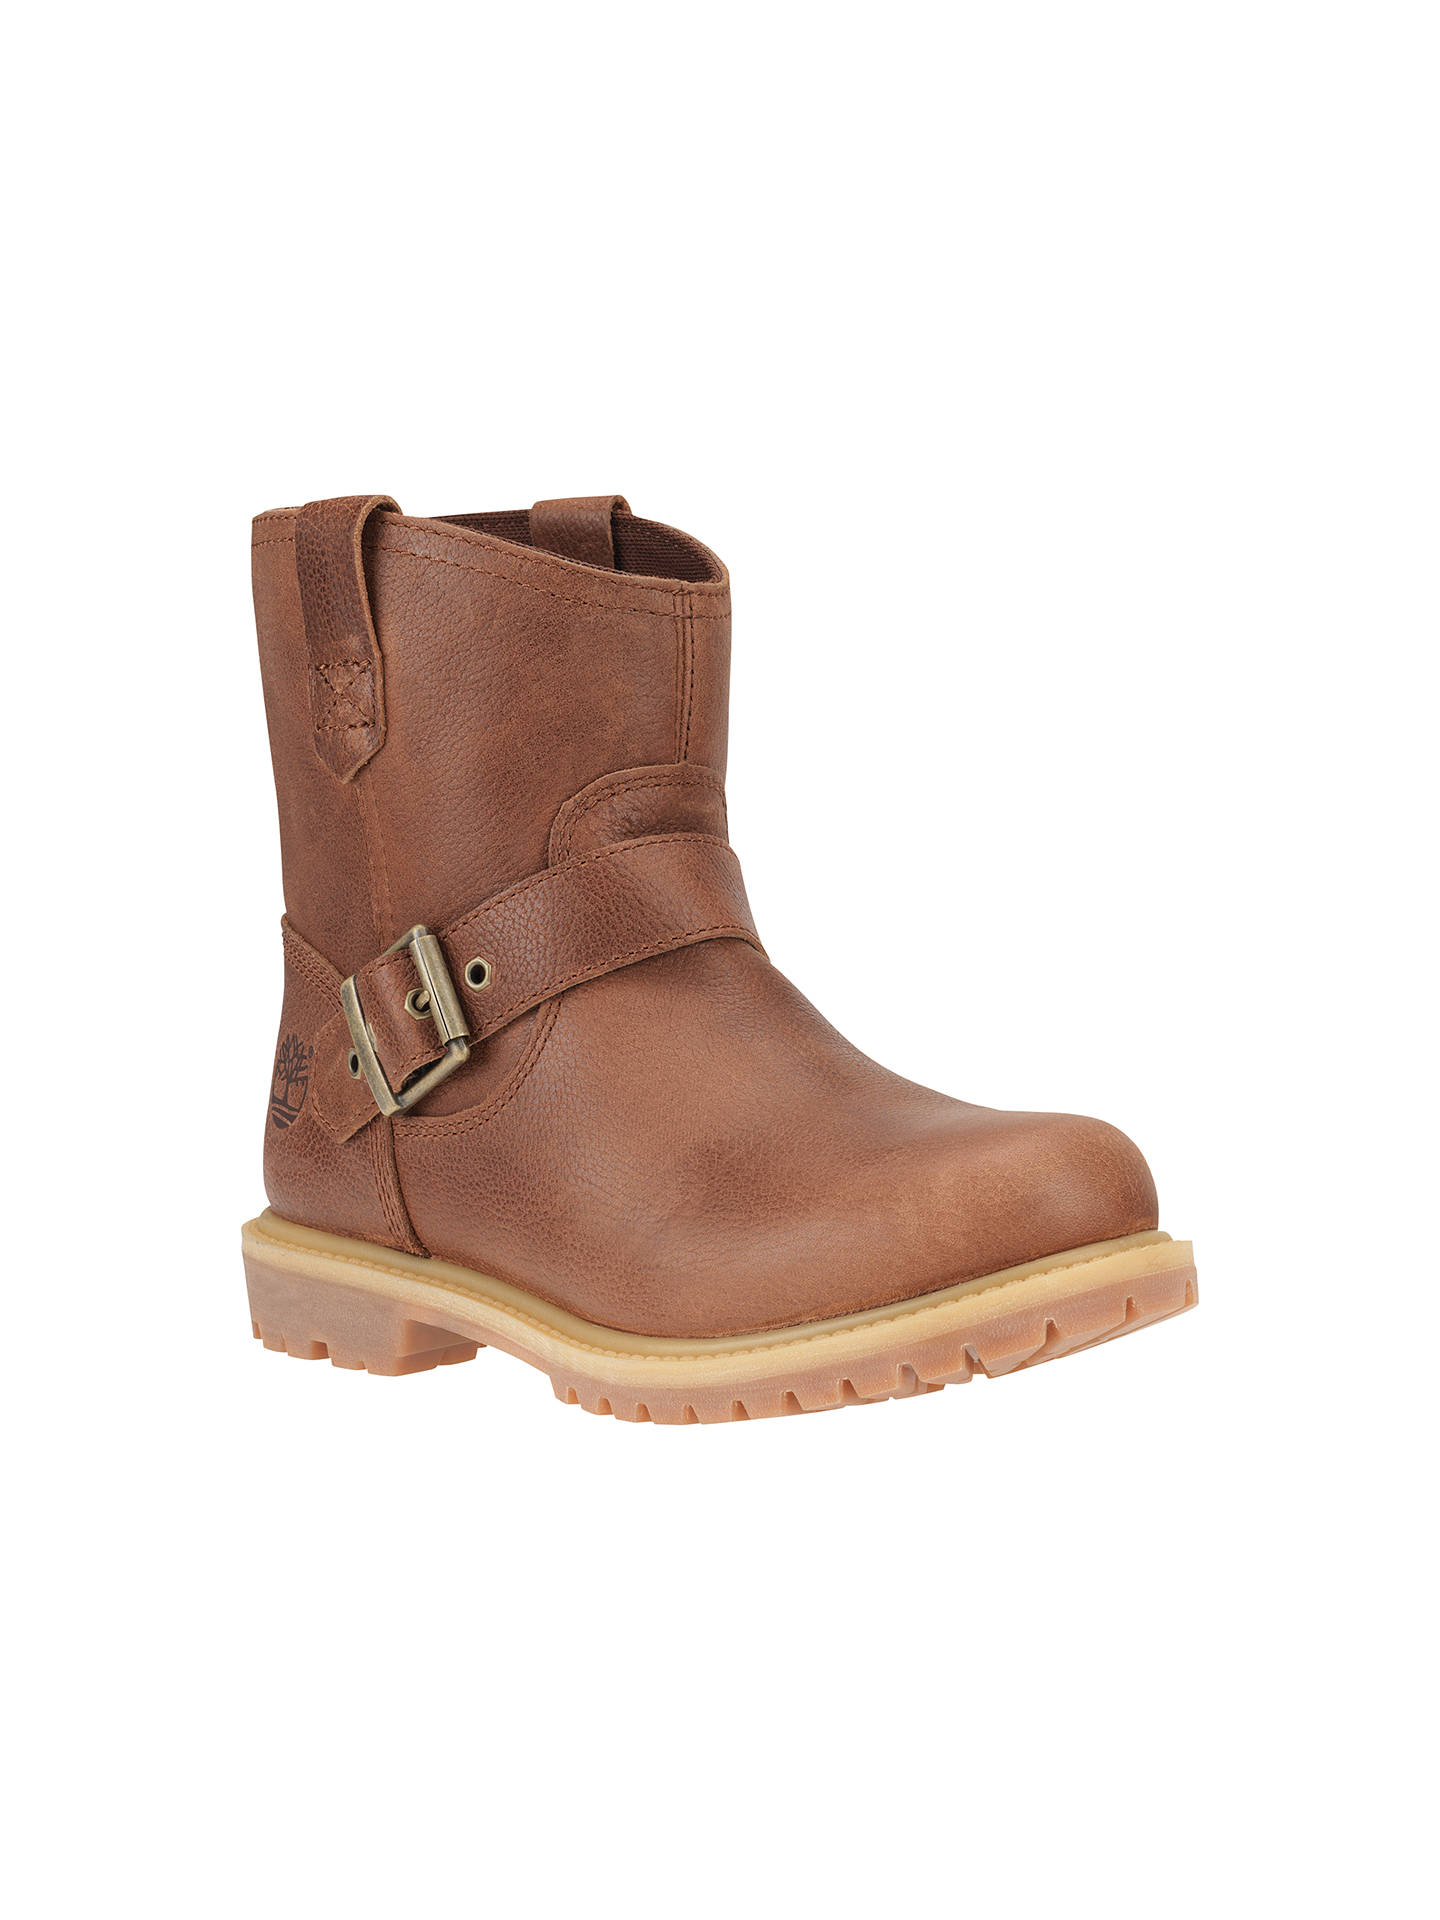 81d6266ef85 Timberland Women's 6-Inch Premium Pull On Waterproof Boot, Brown ...